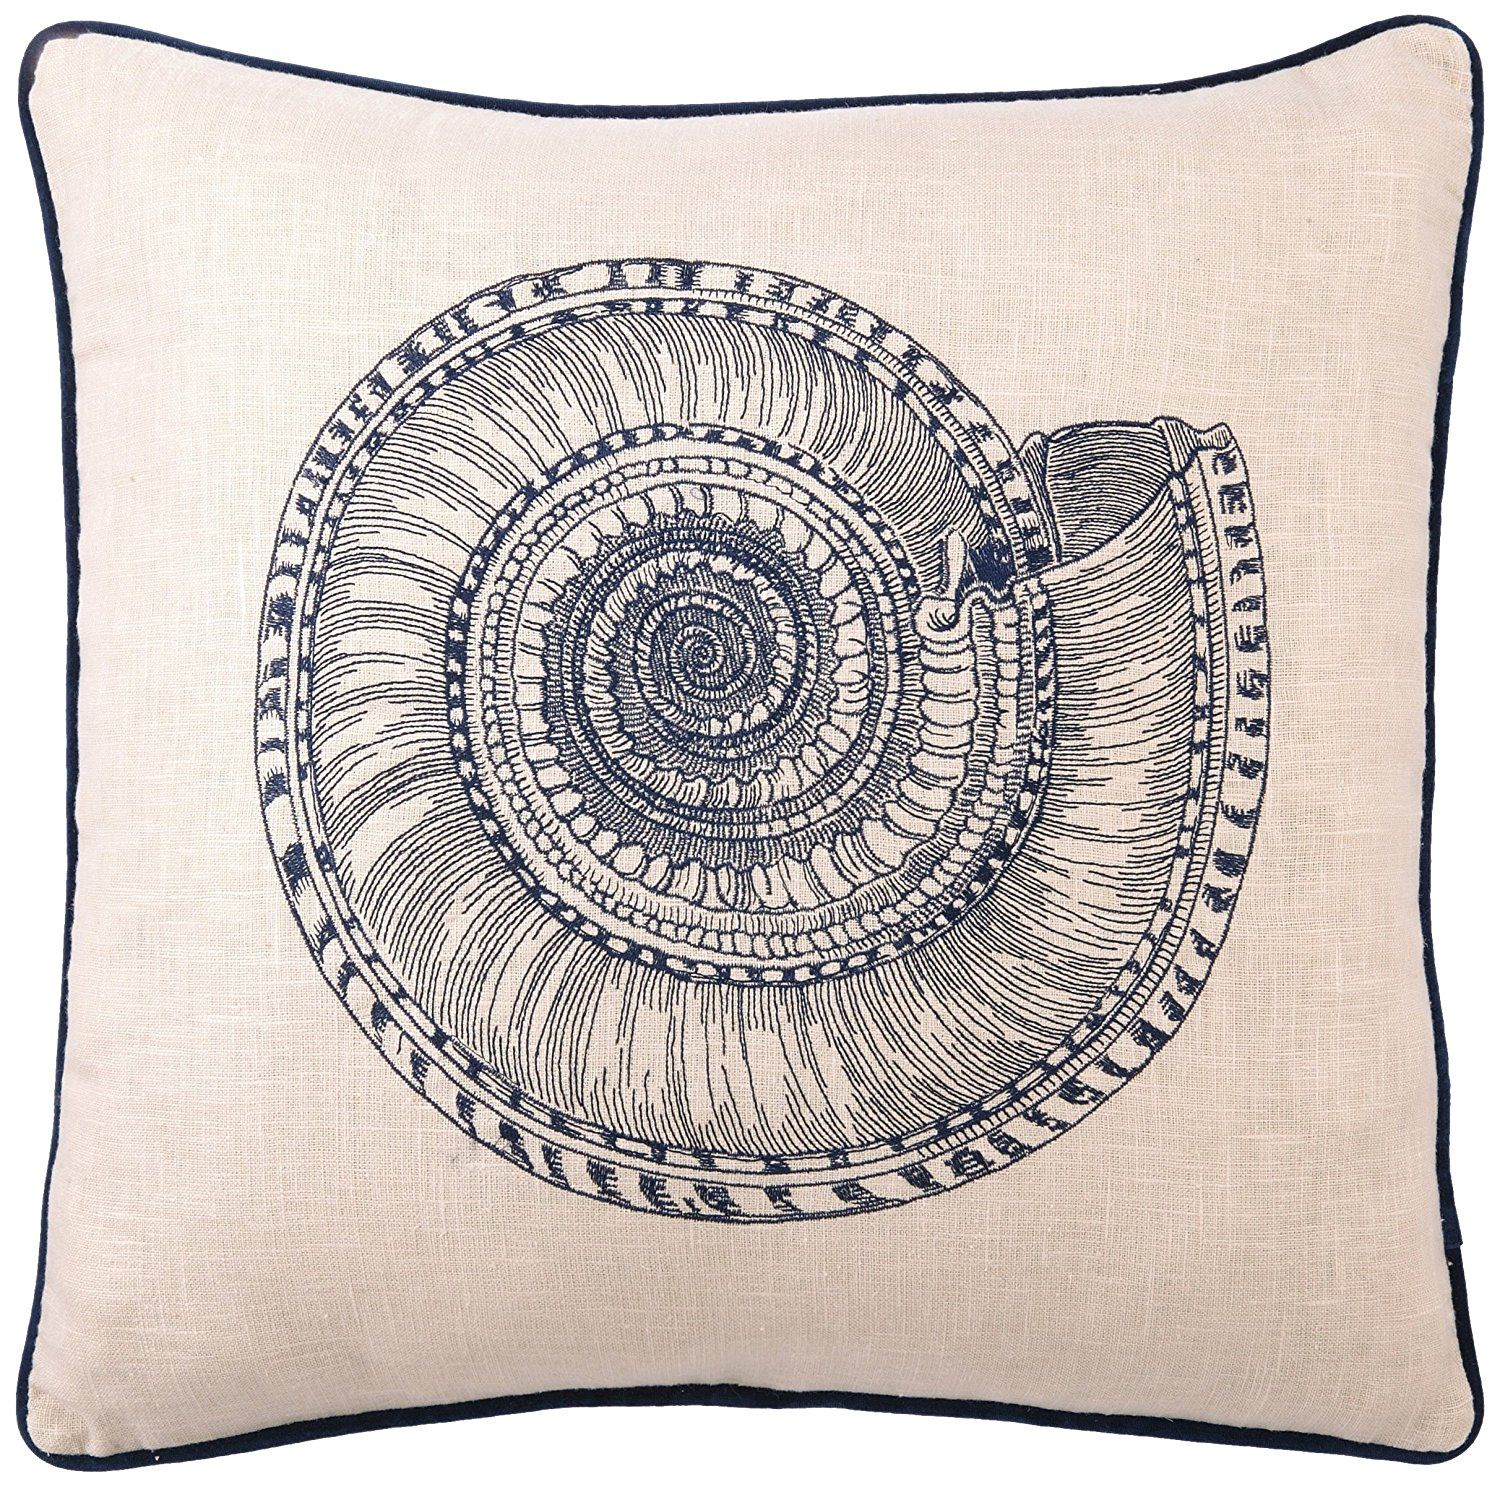 D.L Rhein Embroidered Linen Pillow, Trochus, Blue, 20 by 20-Inch >>> More info could be found at the image url. (This is an affiliate link) #HomeDecorTips